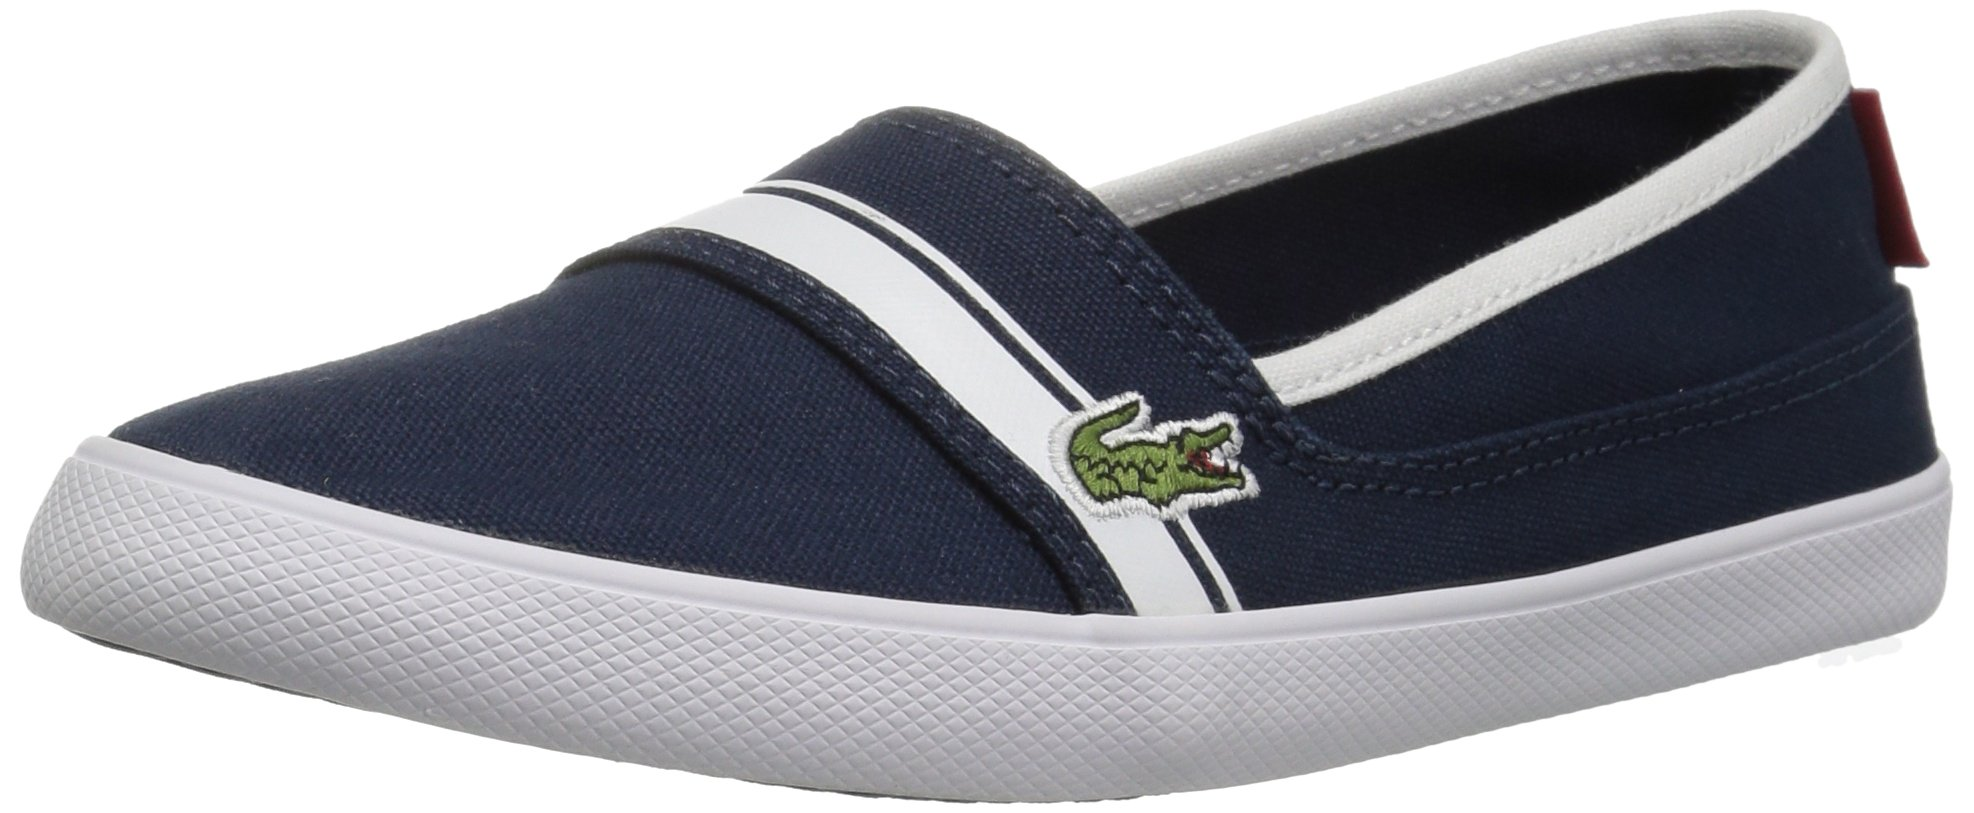 Lacoste Kids' Marice Slip-ONS,Navy/White Cotton Canvas,5 M US Big Kid